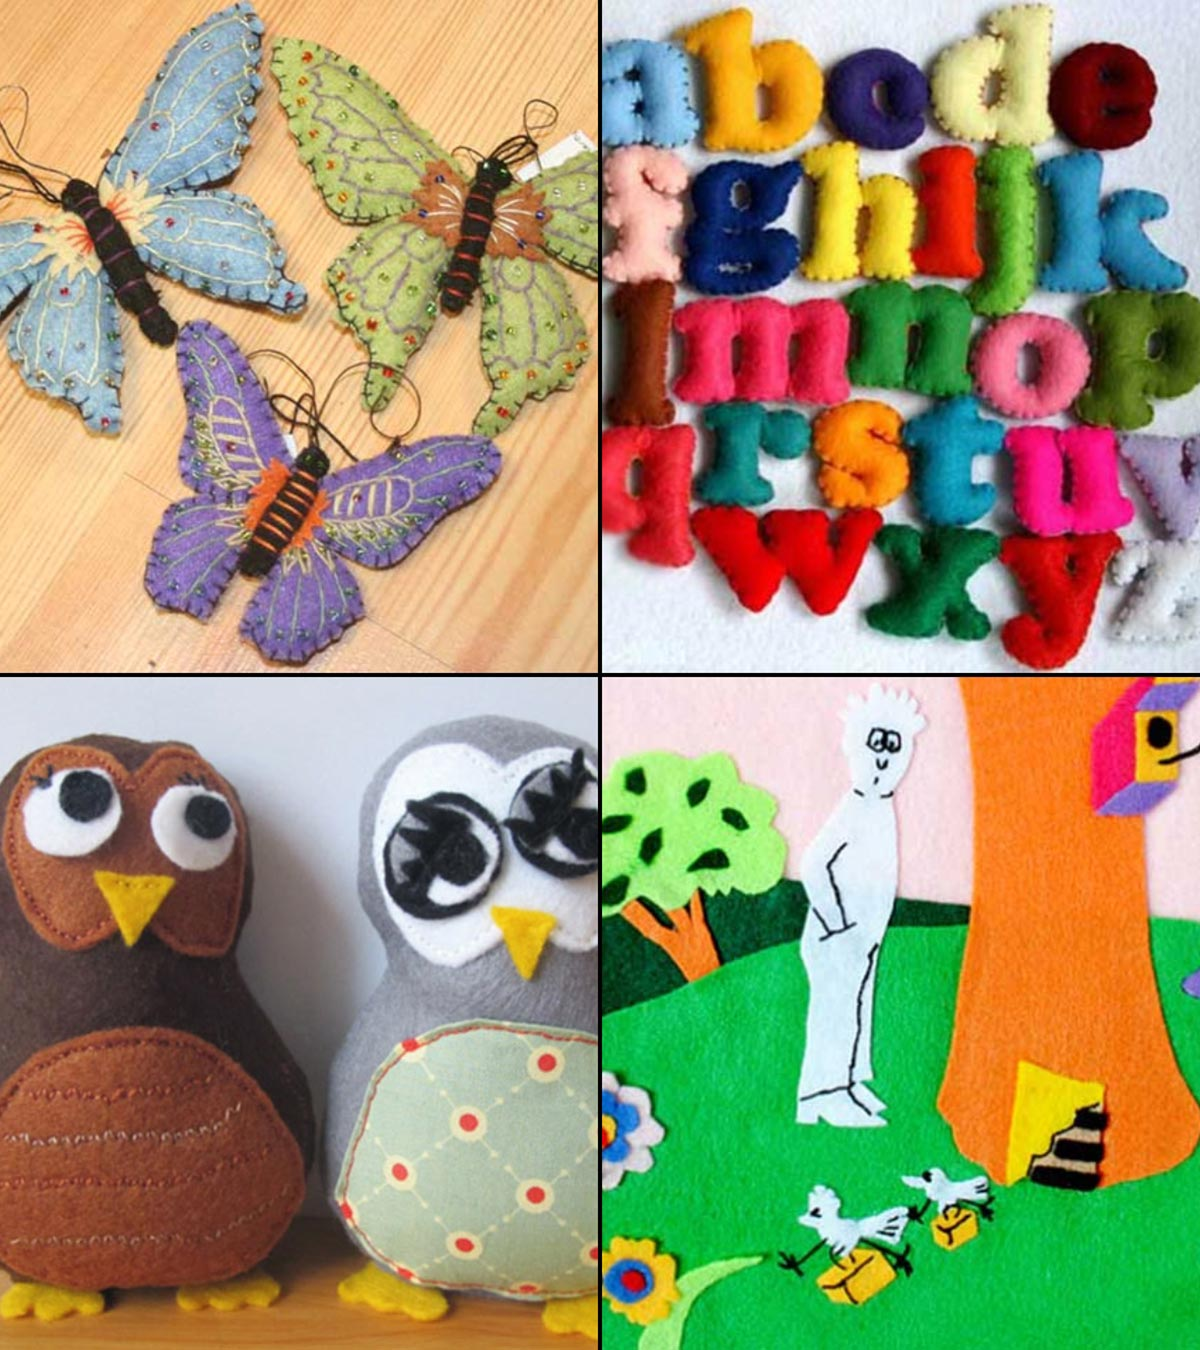 Imaginative crafts for kids are a great way to spark your kid's creativity and inspire them to explore their minds. Top 10 Beautiful Felt Crafts Ideas For Kids Of All Ages